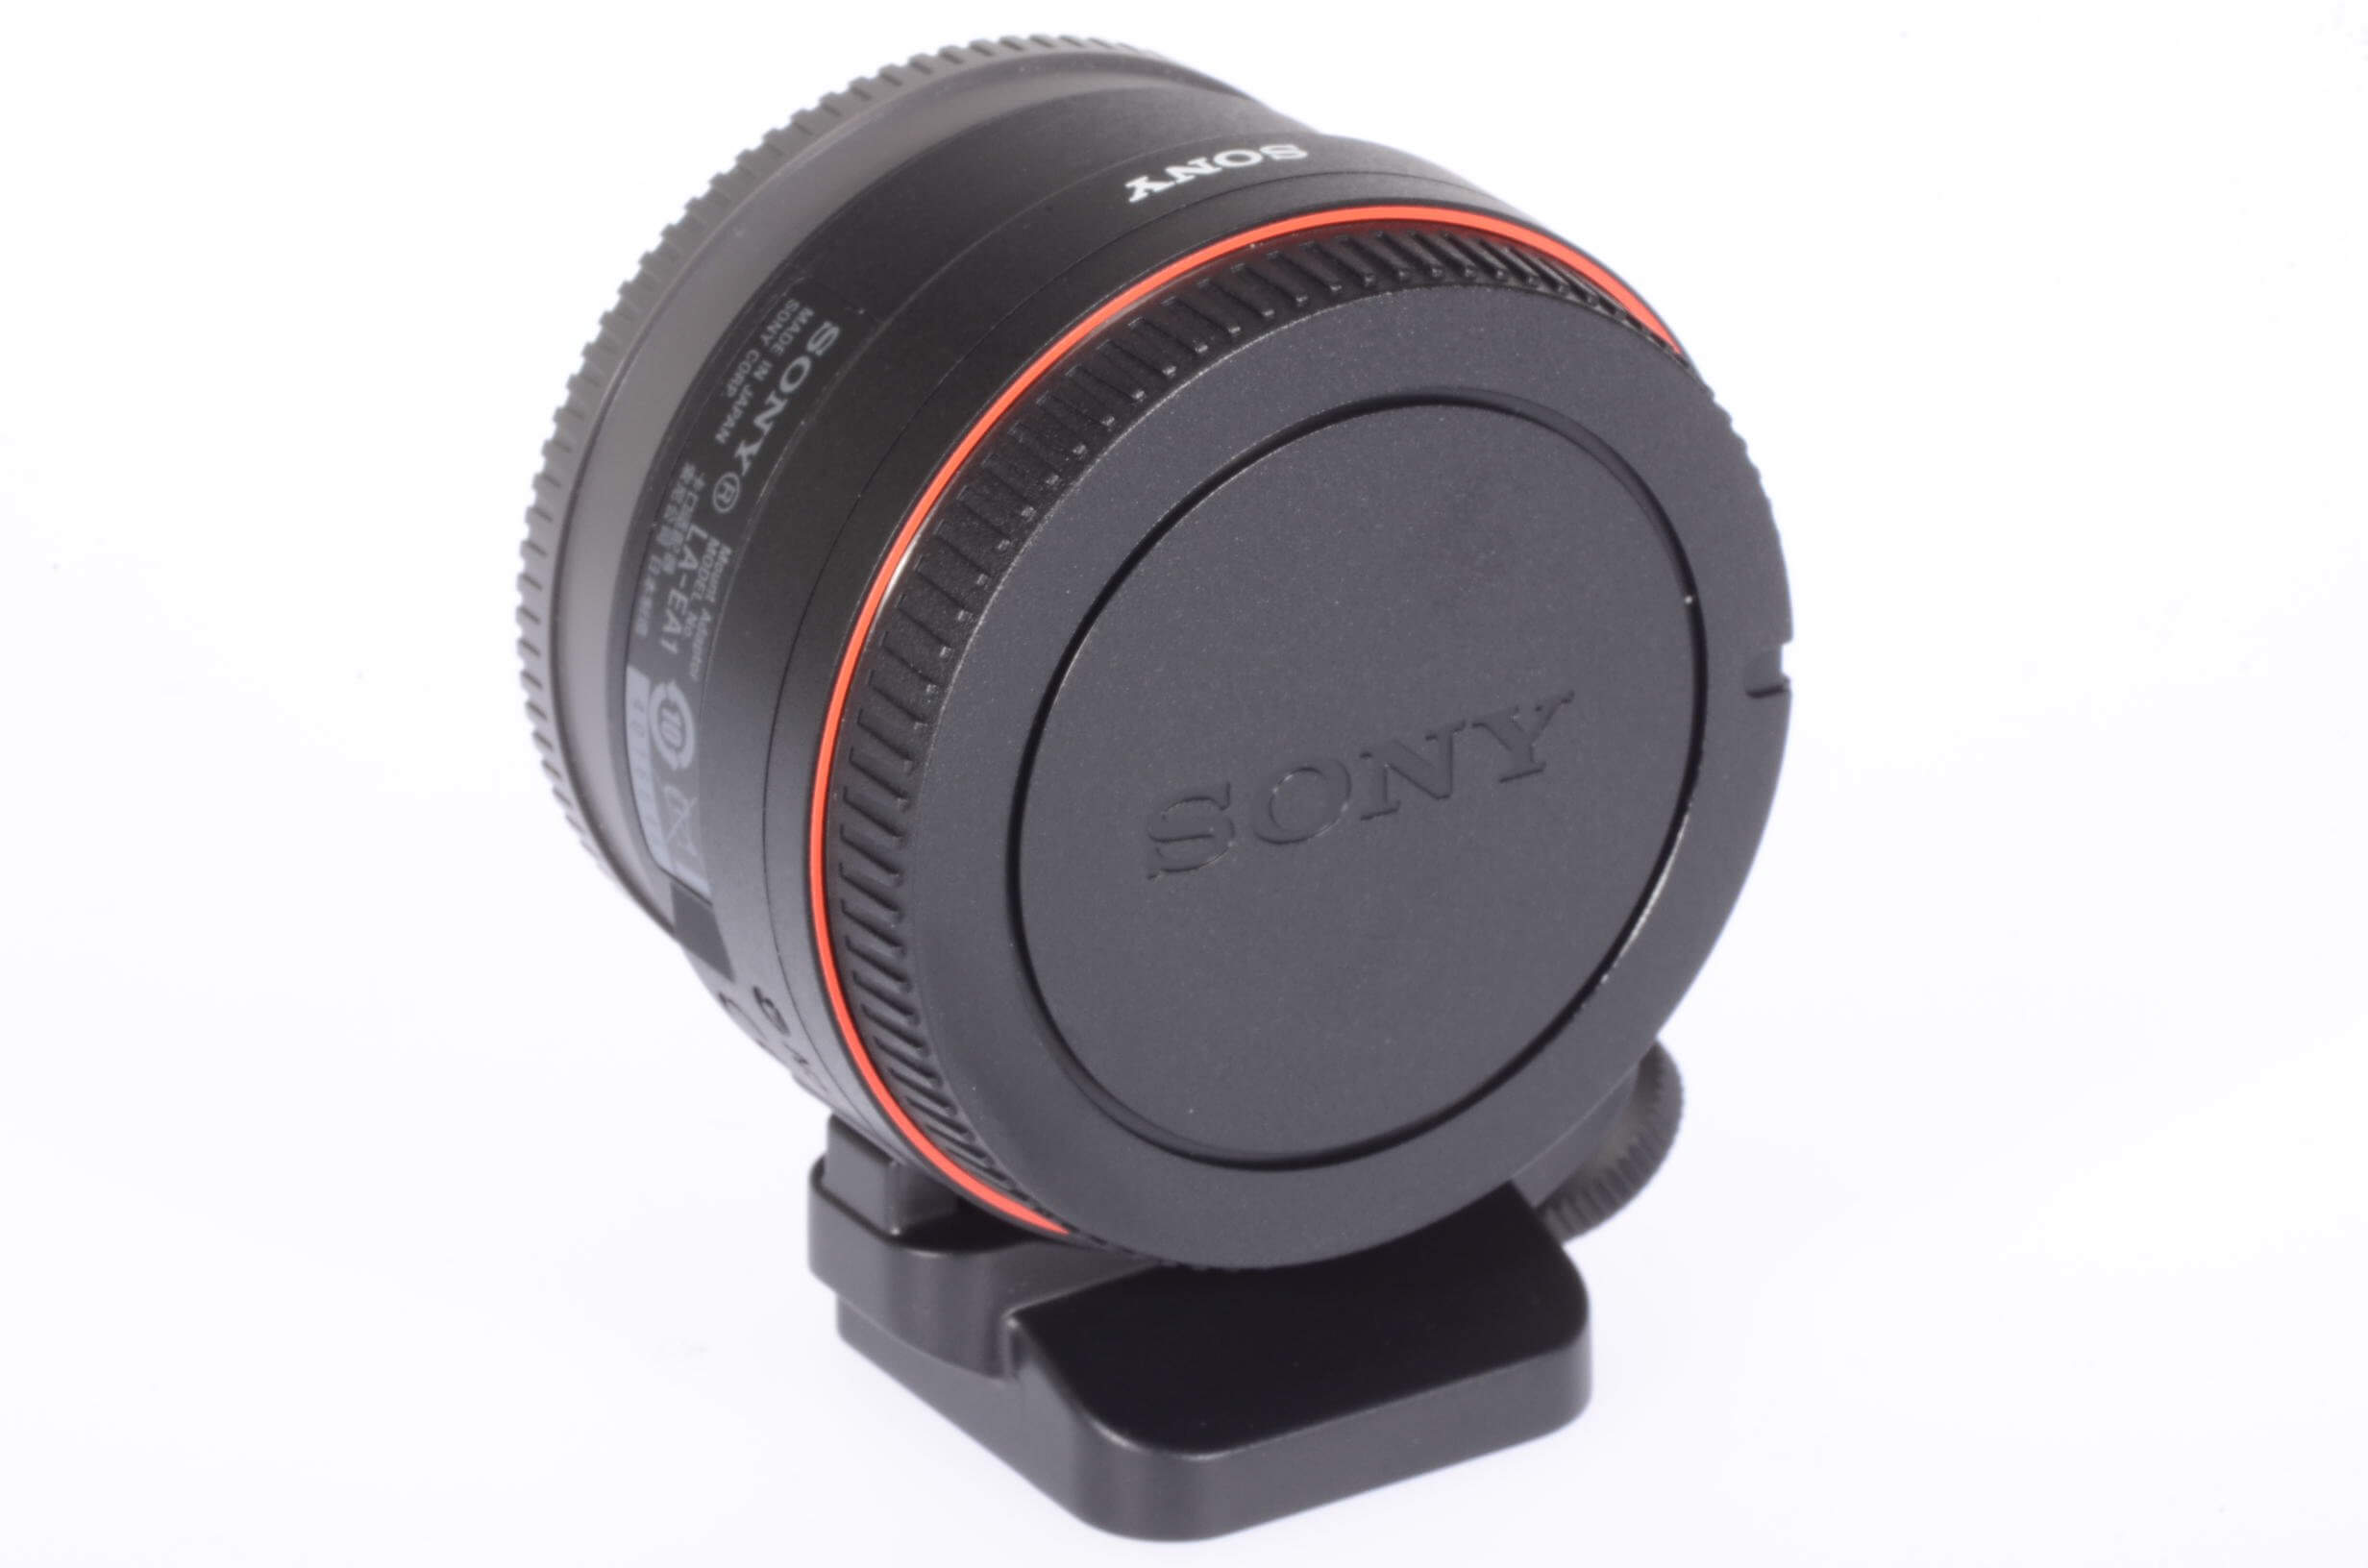 Sony LA-EA1 mount adaptor, Mint!